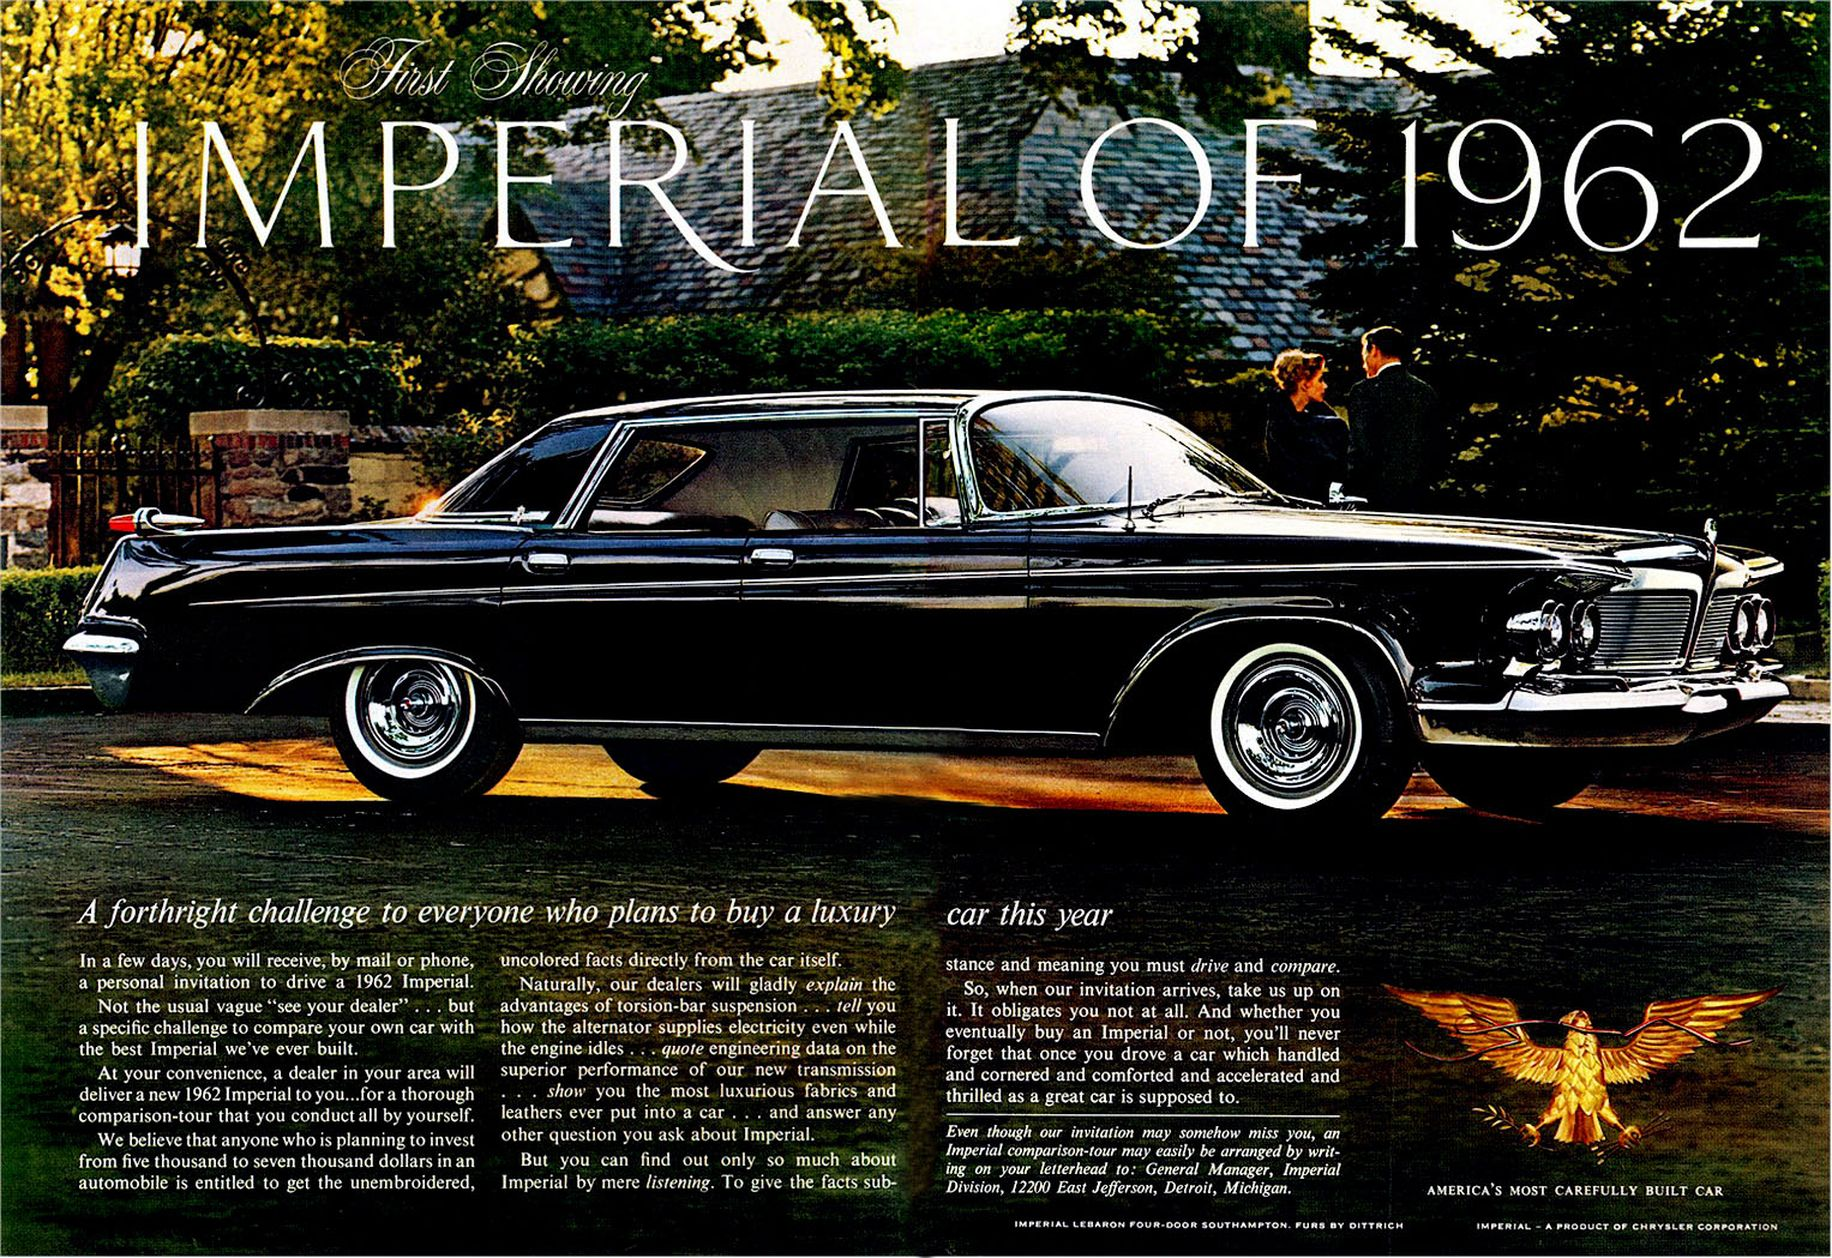 List Of Car Brands >> First Showing Imperial Of 1962 | Print Ads | hobbyDB